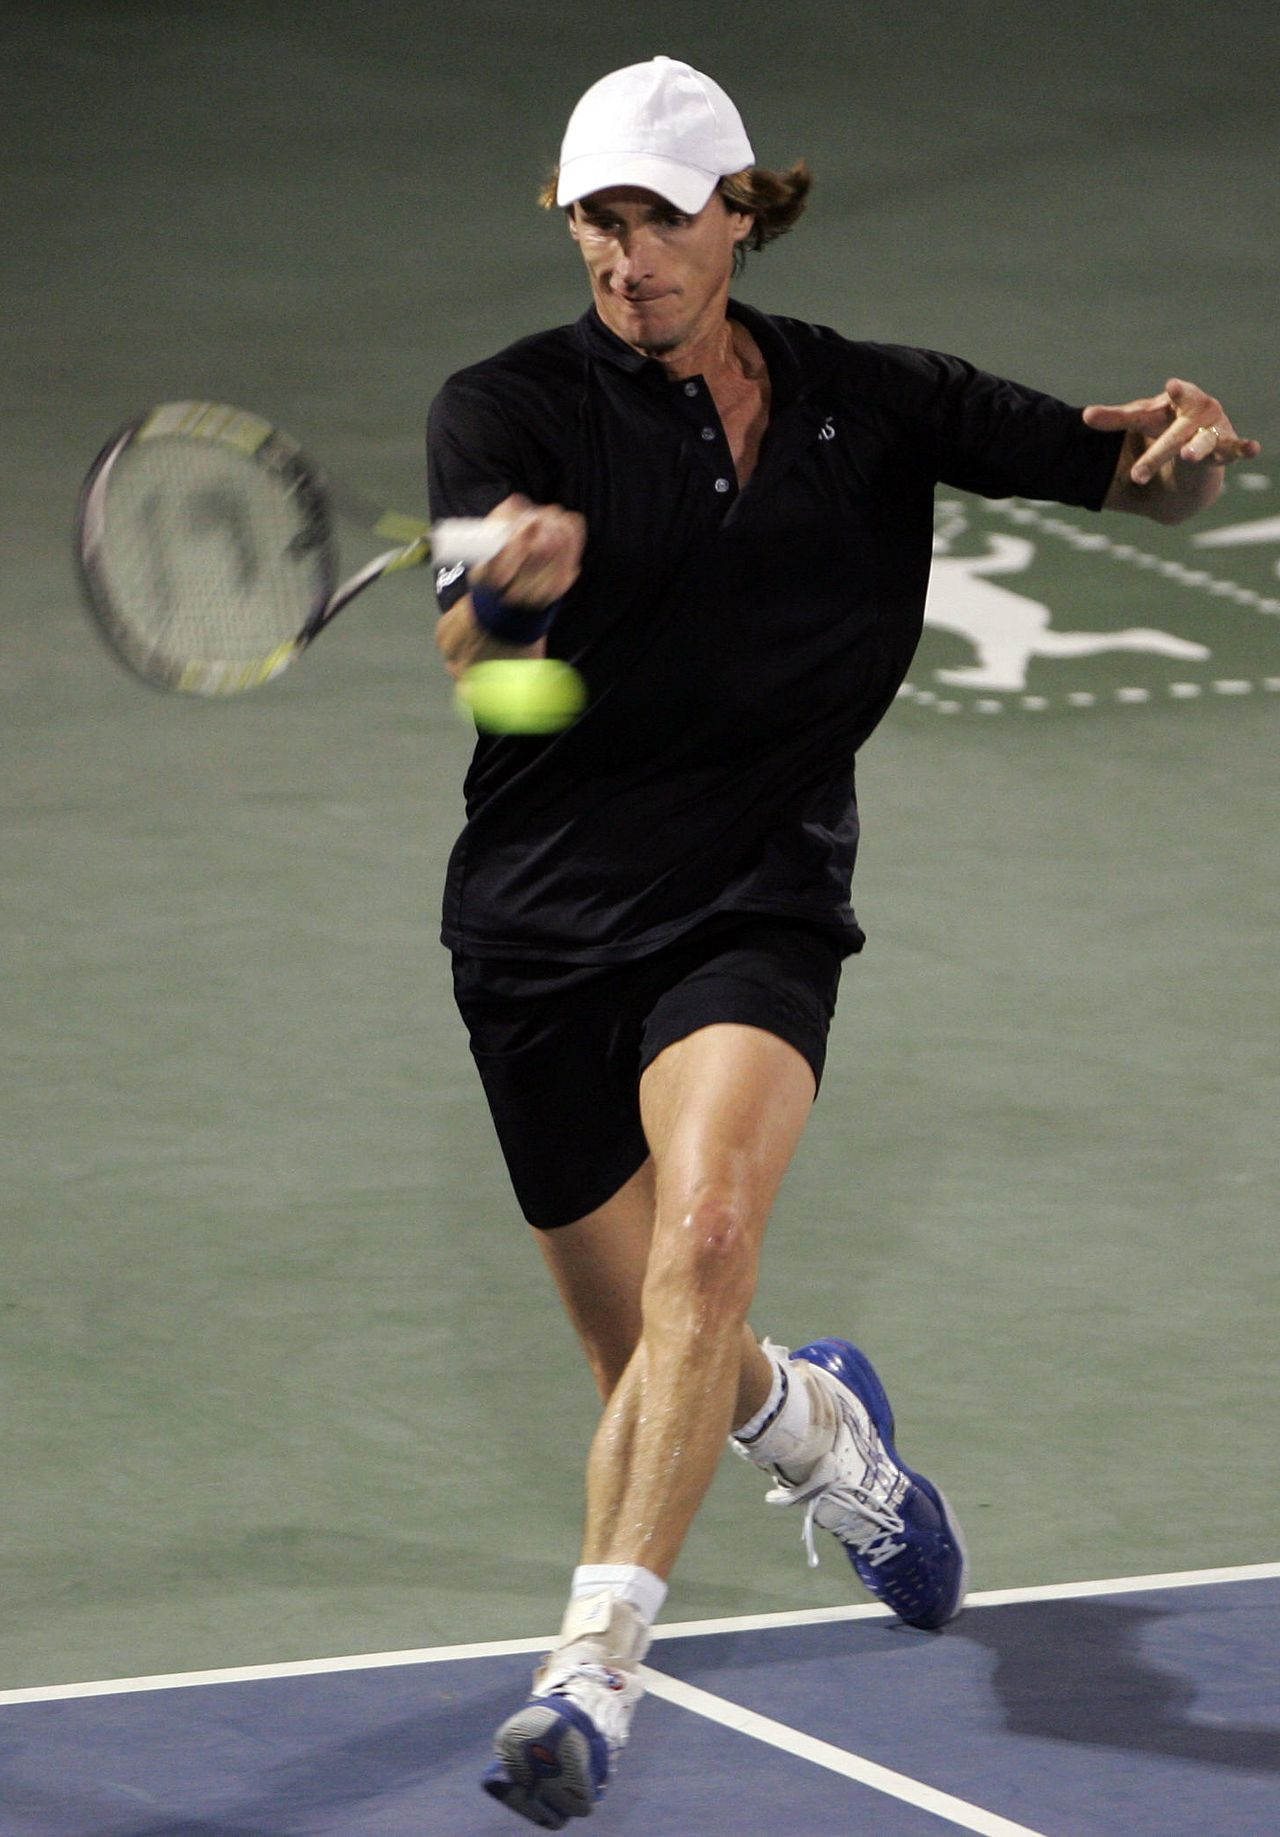 "Dutch tennis legend Paul Haarhuis returns the ball during 'The Legends ""Rock"" Dubai' tennis championship final against US legend Jim Courier in the Gulf emirate of Dubai, 24 November 2007. Haarhuis won the match. Now in its third year, 'The Legends ""Rock"" Dubai' brings together some of the world's most famous and successful tennis players ever to grace the courts for three days of intense action at the Dubai Tennis Stadium. AFP PHOTO/KARIM SAHIB"